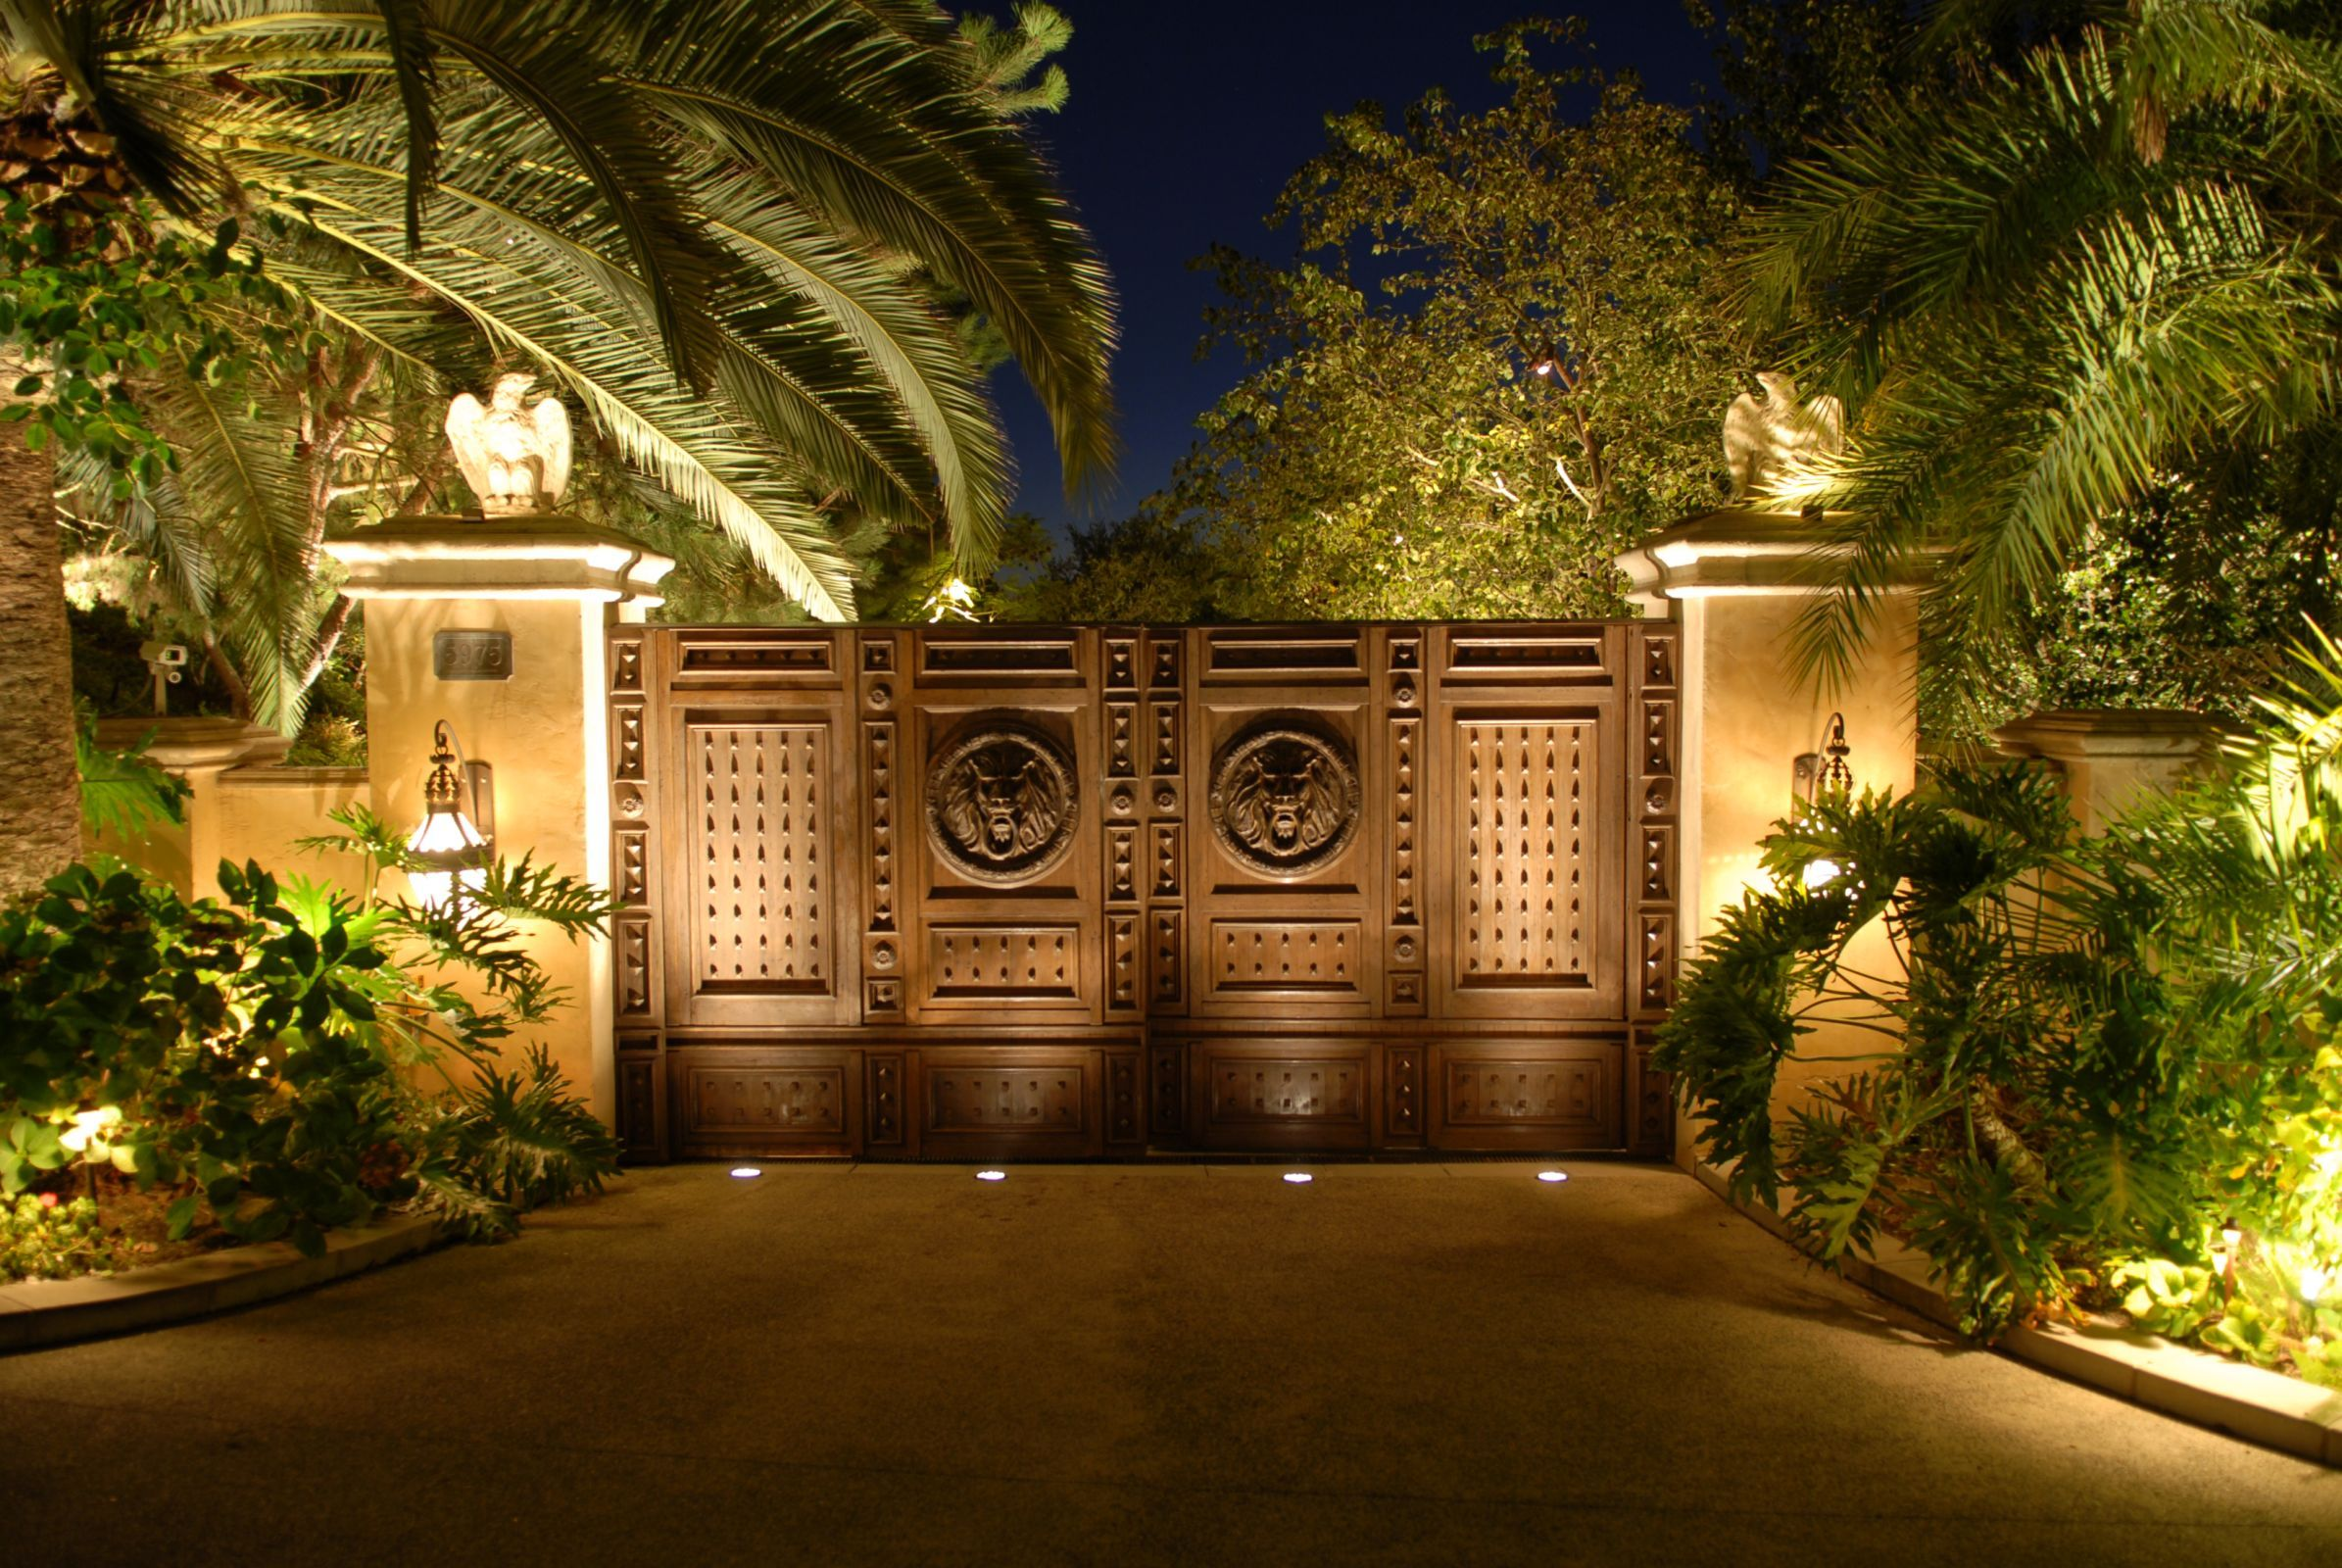 Main gate entrance to an estates i illuminated in 92067 by for Main entry gate design